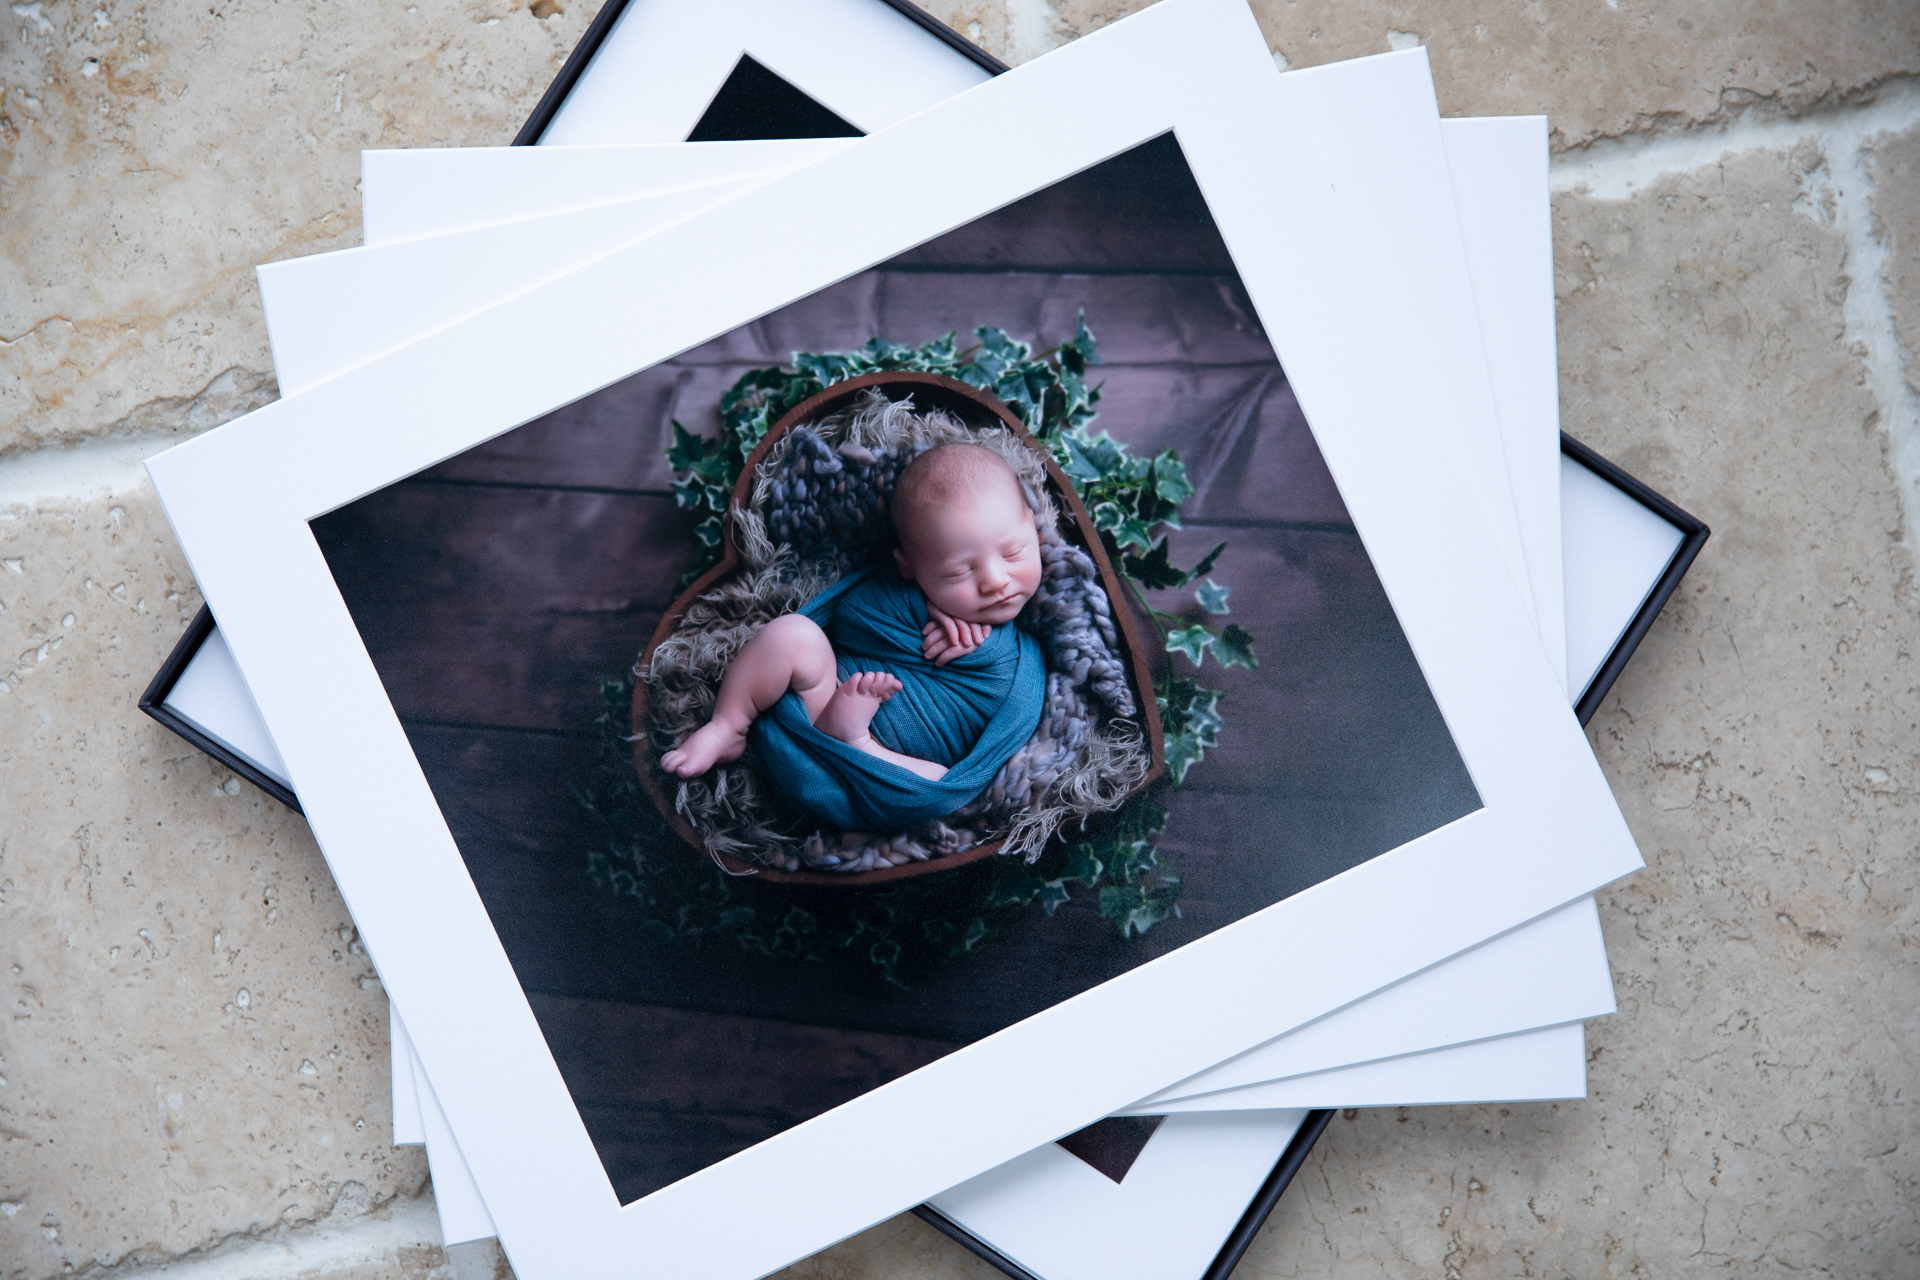 products - Luxury photographs gift box